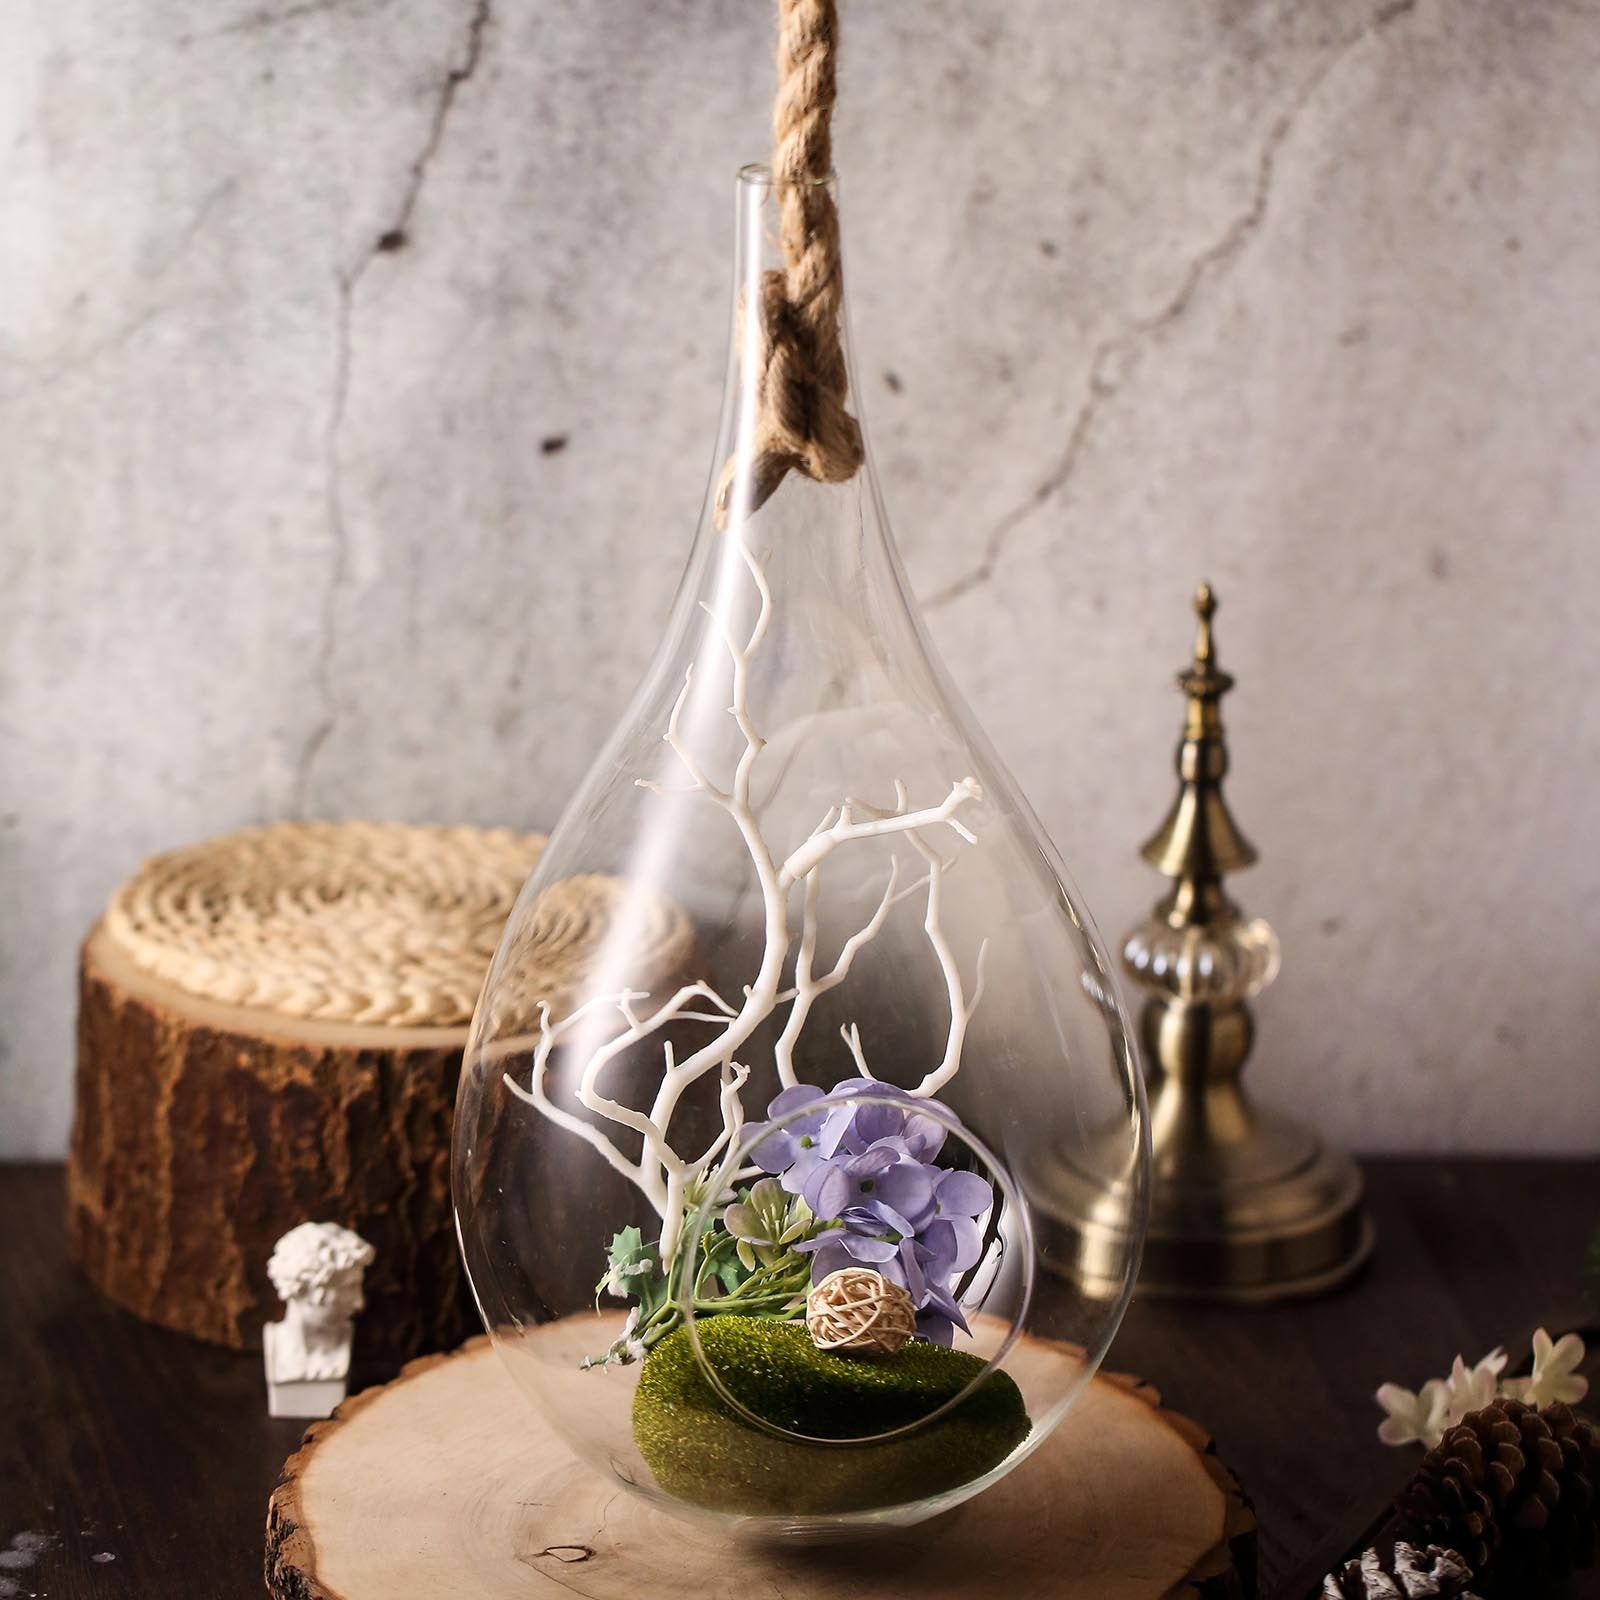 15 Teardrop Hanging Glass Terrarium With Rope Air Plant Terrarium Chaircoverfactory